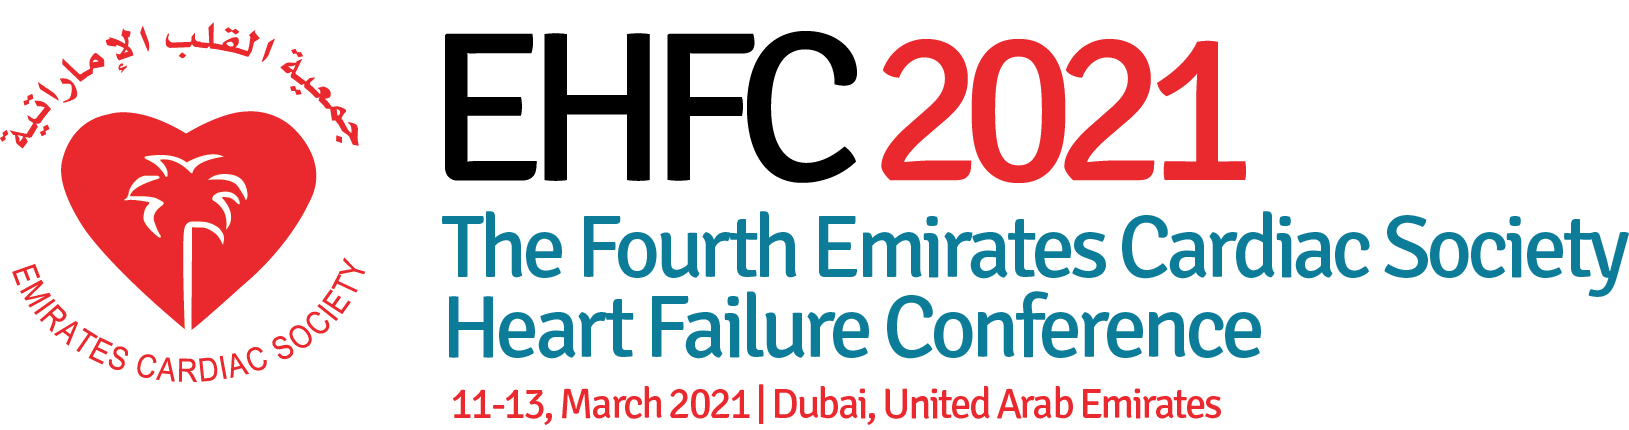 The Third Emirates Cardiac Society Heart Failure Conference 2021